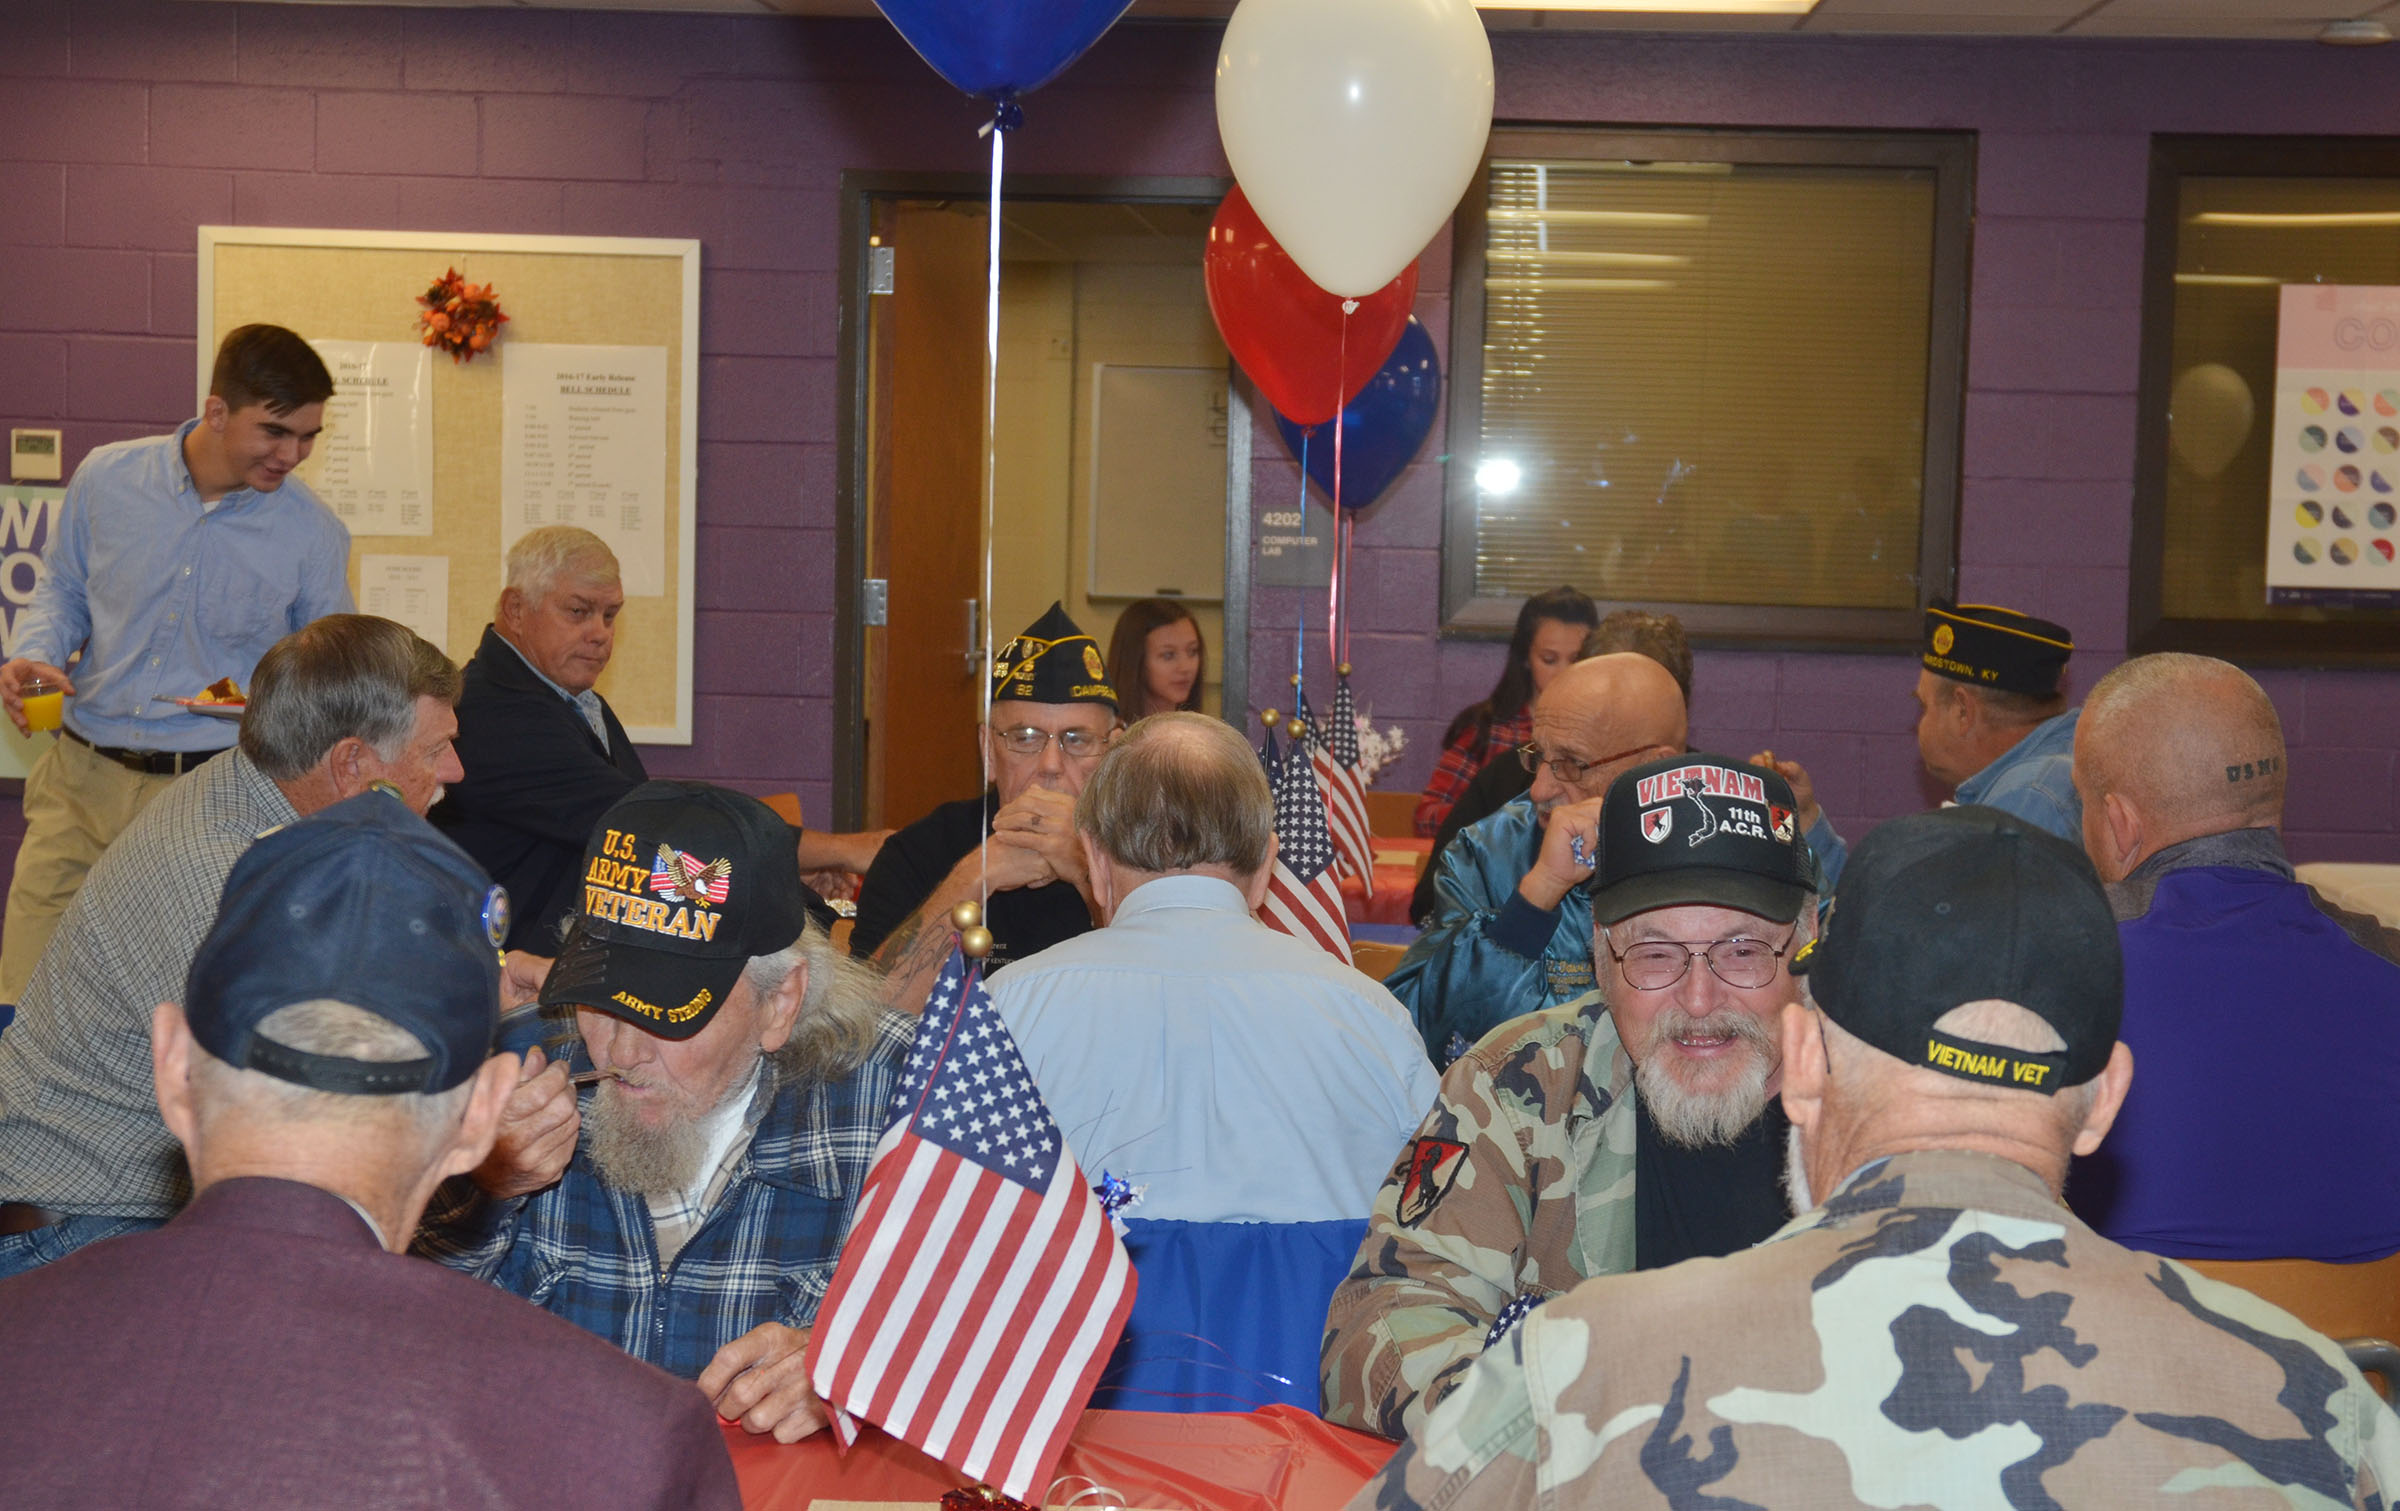 Veterans enjoy a breakfast in their honor after the ceremony.